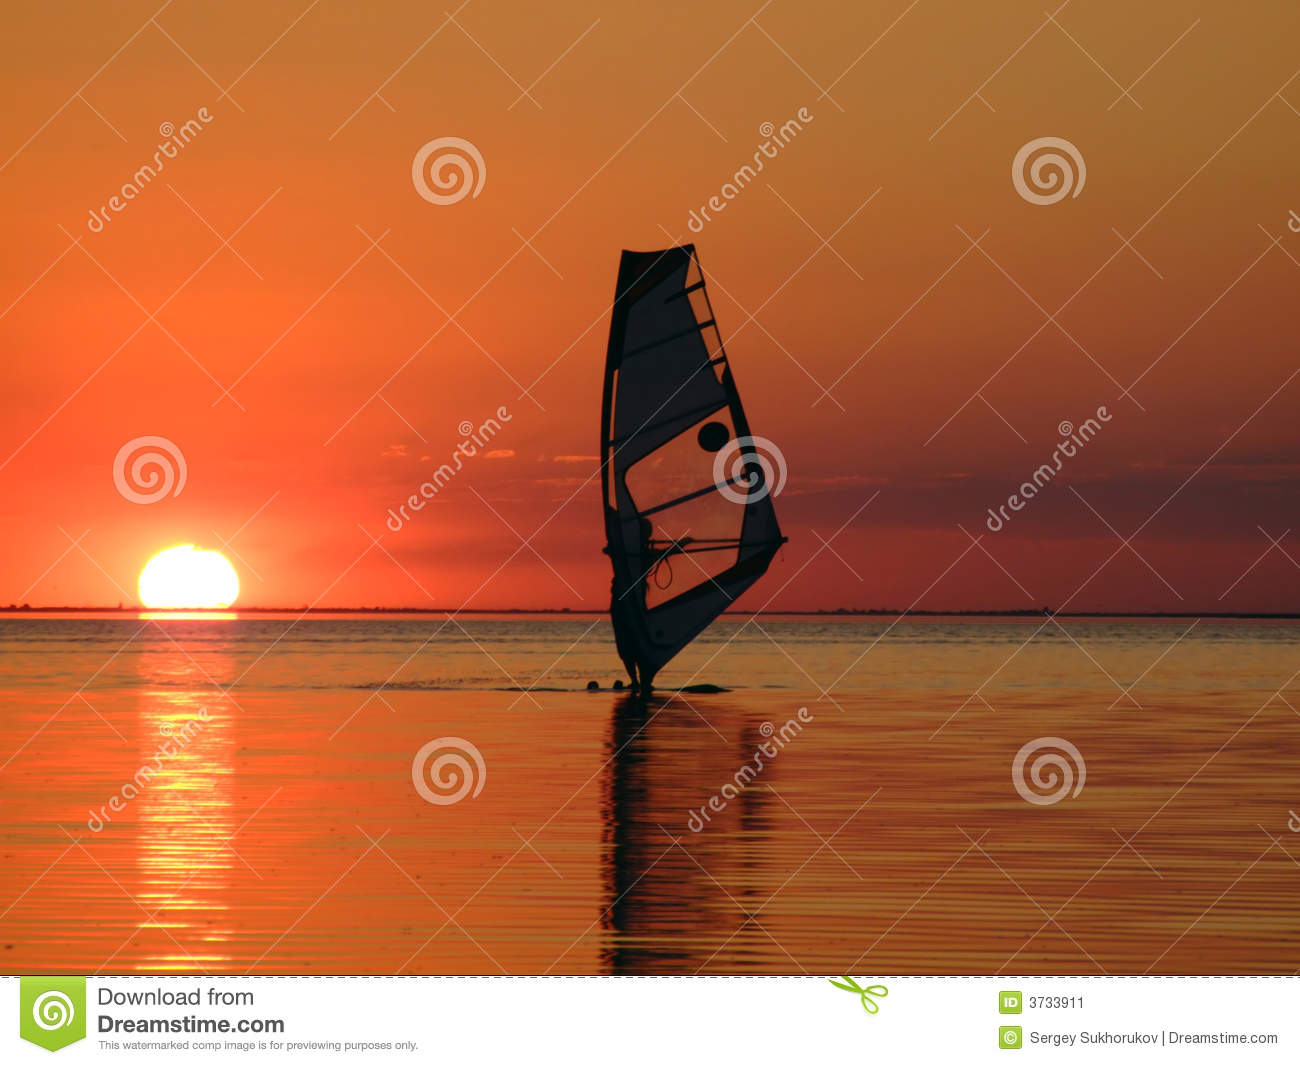 Silhouette of a windsurfer on waves of a gulf 2